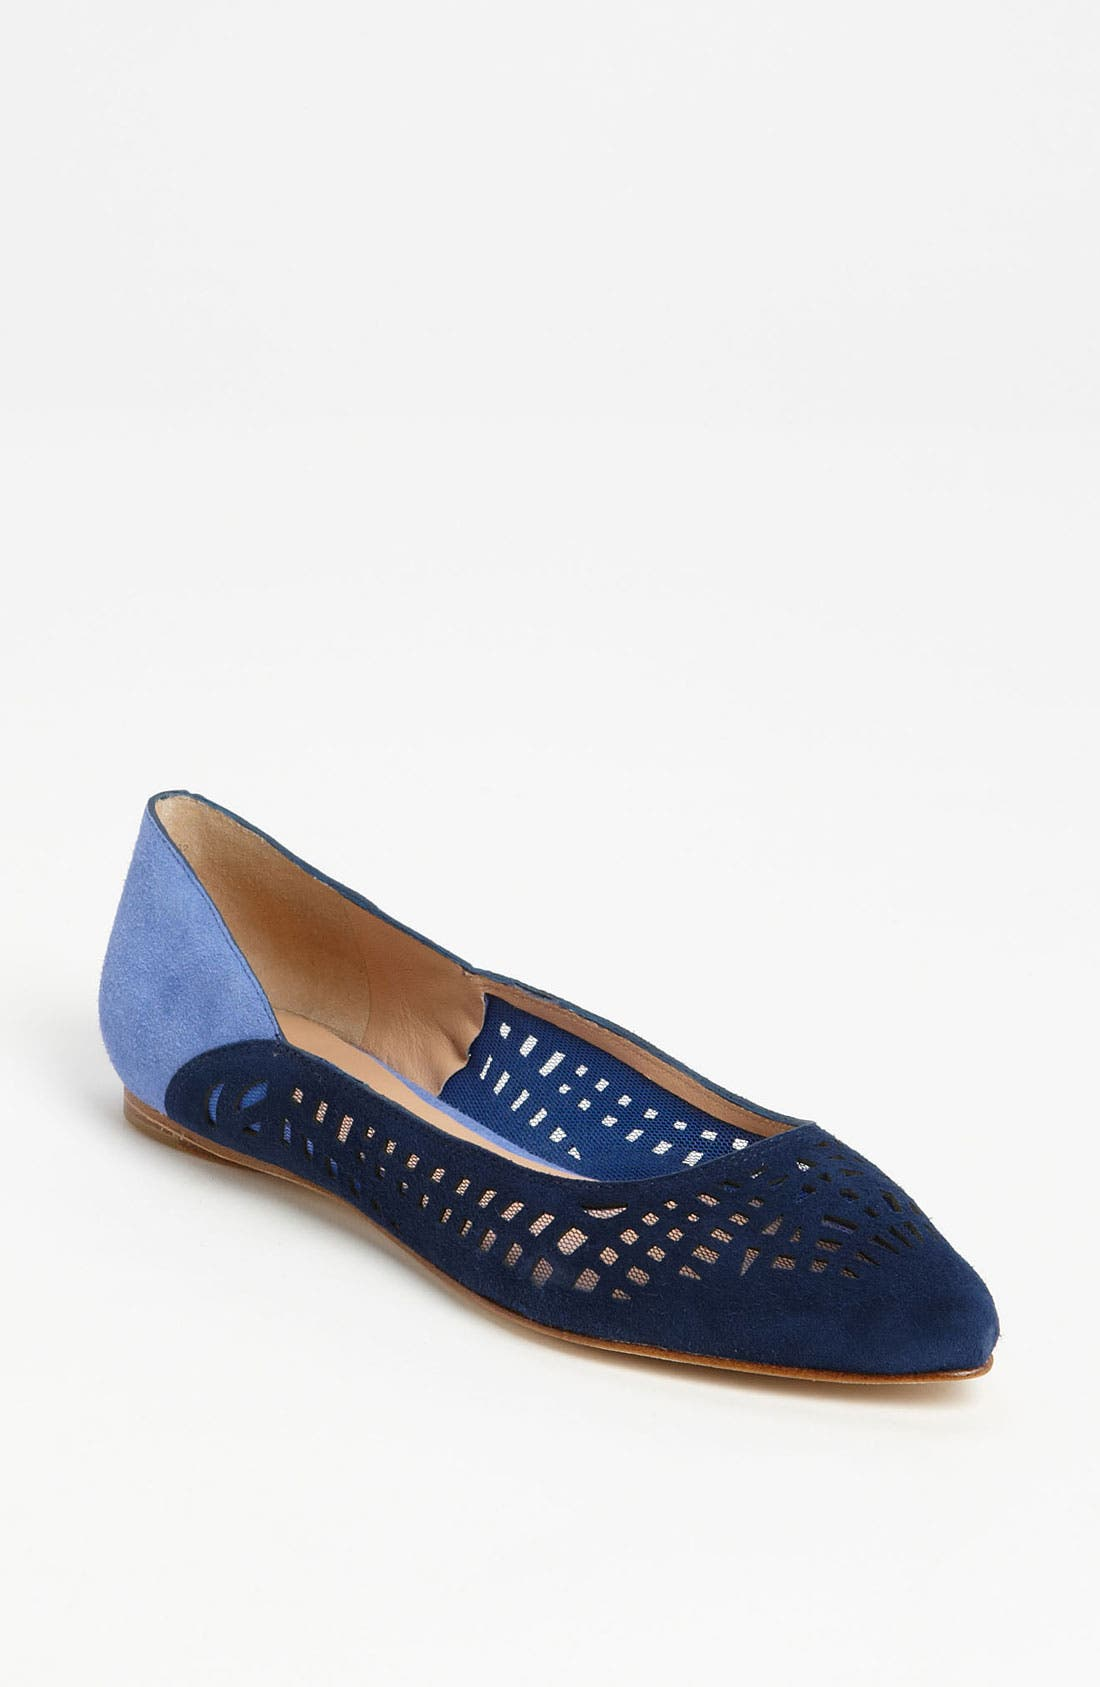 Alternate Image 1 Selected - Belle by Sigerson Morrison 'Vada2' Flat